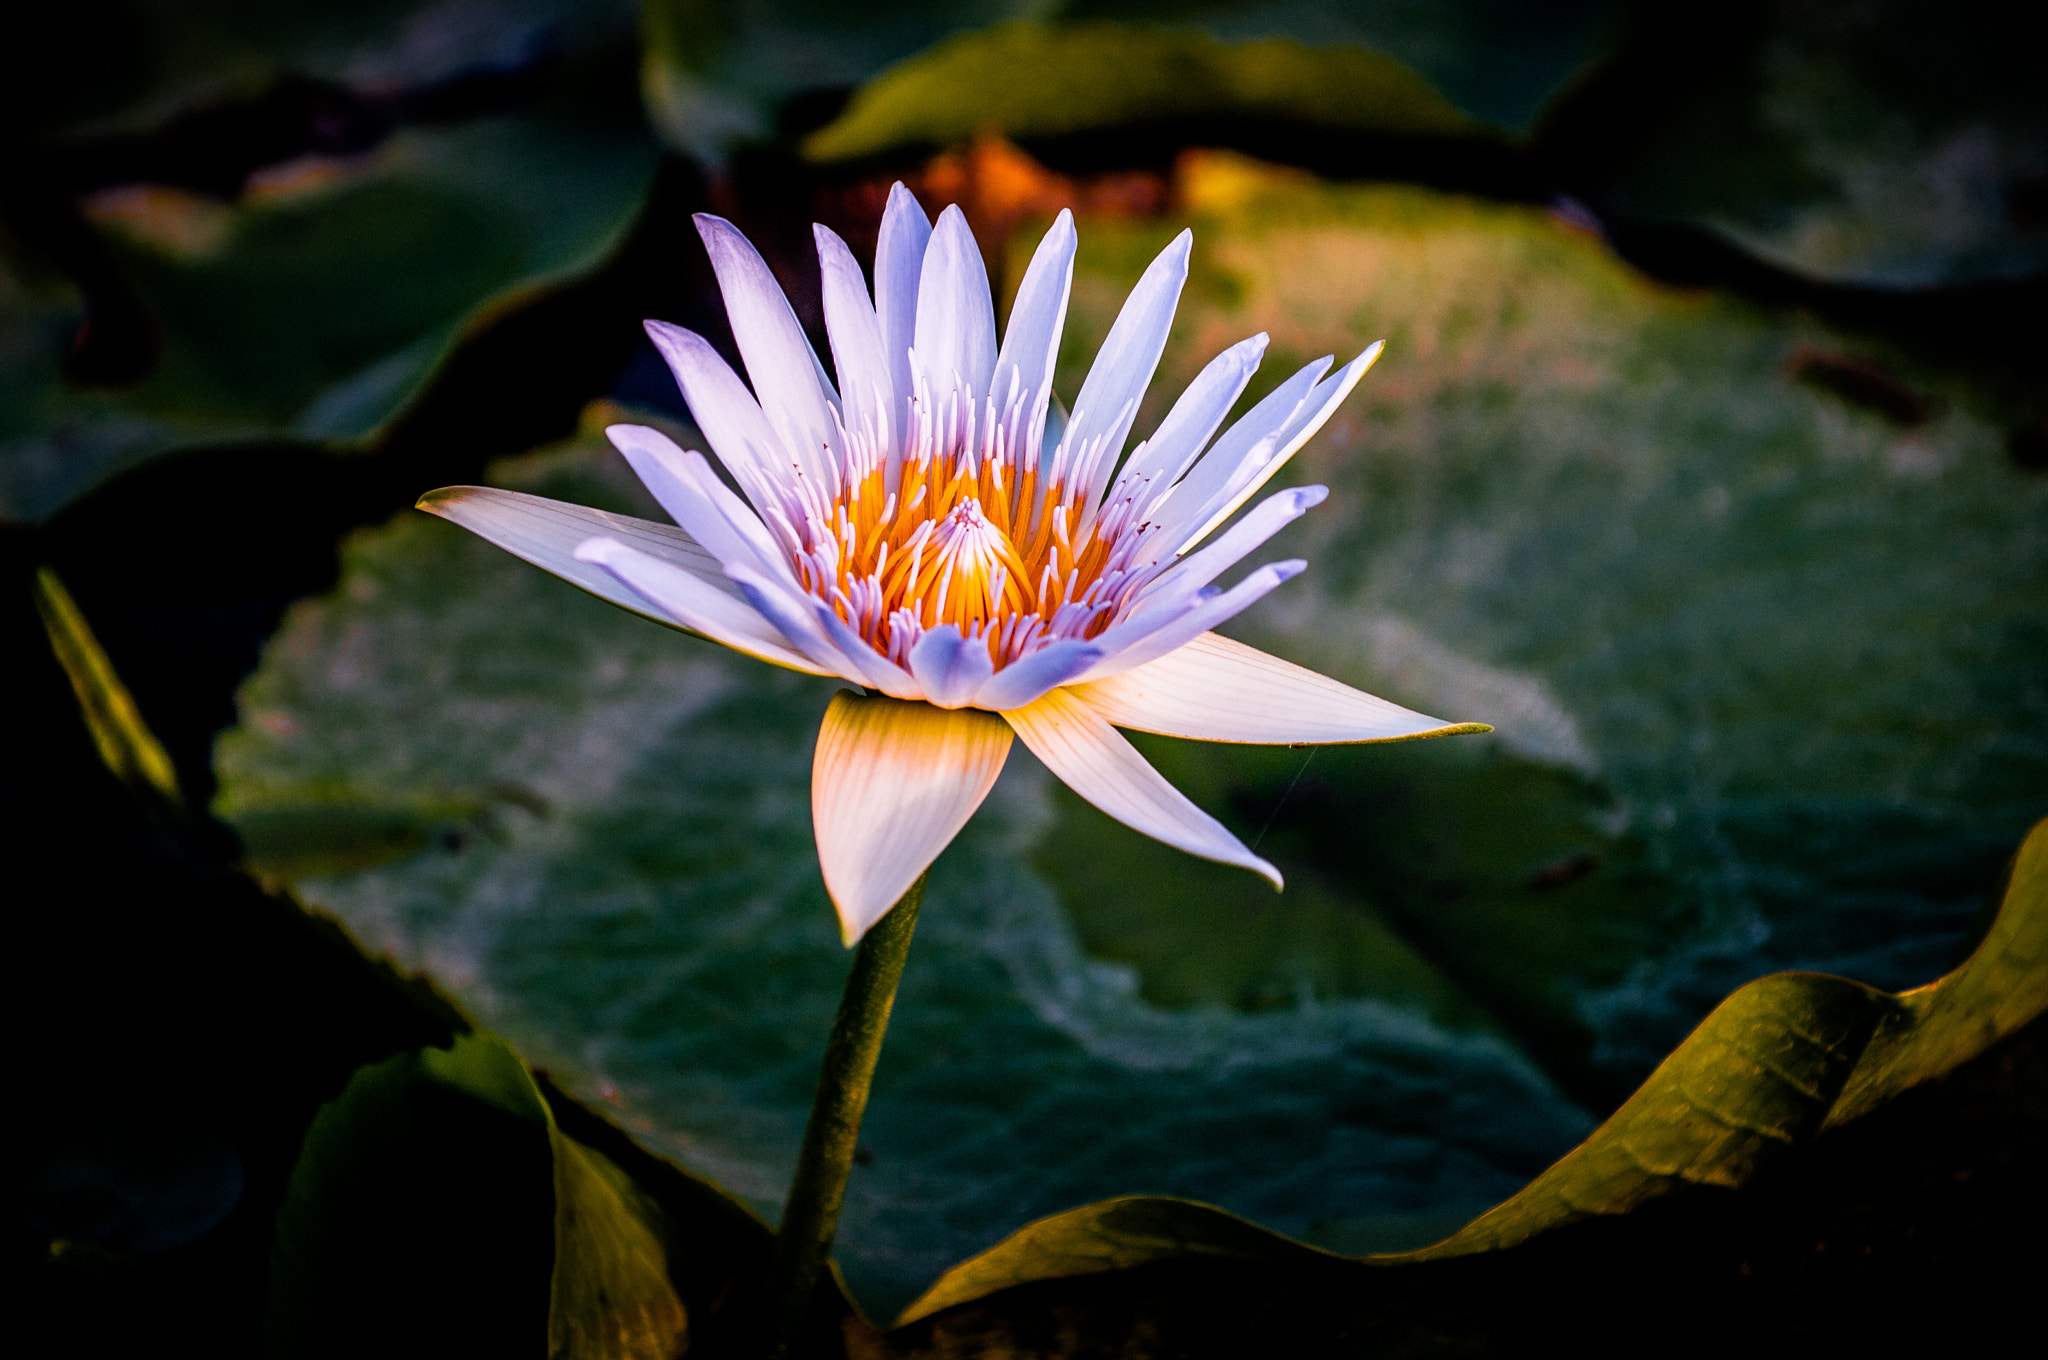 Photograph Lotus by Gordon Chiam on 500px